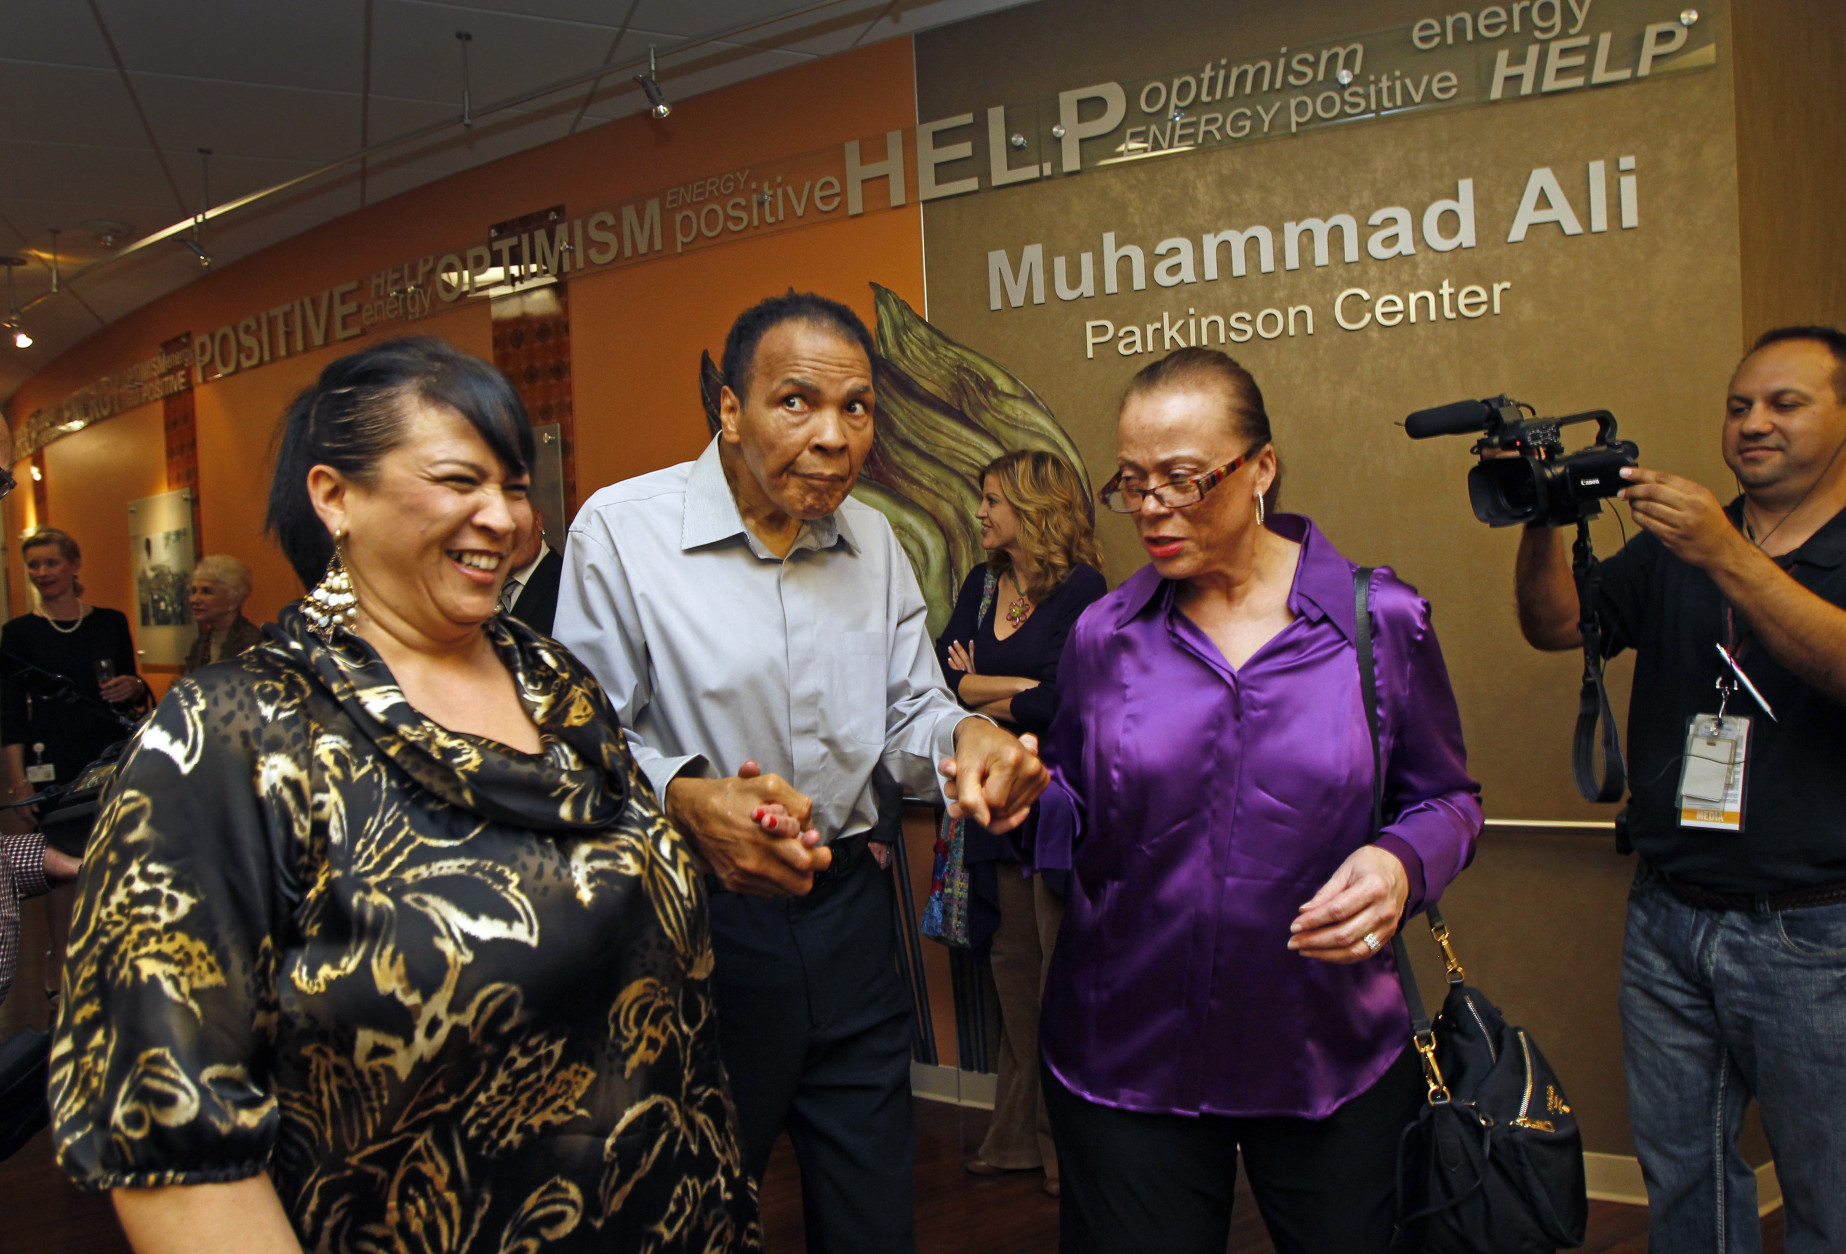 FILE - In this Feb. 22, 2012, file photo, Muhammad Ali, center, with the support of sister in-law Marilyn Williams, left, and wife Lonnie, walks through the Muhammad Ali Parkinson Center at Barrow Neurological Institute at St. Joseph's in Phoenix. Mohammed Ali is in the hospital with respiratory problems, and while officials haven't given details about his condition, the boxing great's health in general is complicated by advanced Parkinson's _ a degenerative disease he's lived with for three decades.  (AP Photo/The Arizona Republic, David Kadlubowski) MARICOPA COUNTY OUT; MAGS OUT; NO SALES